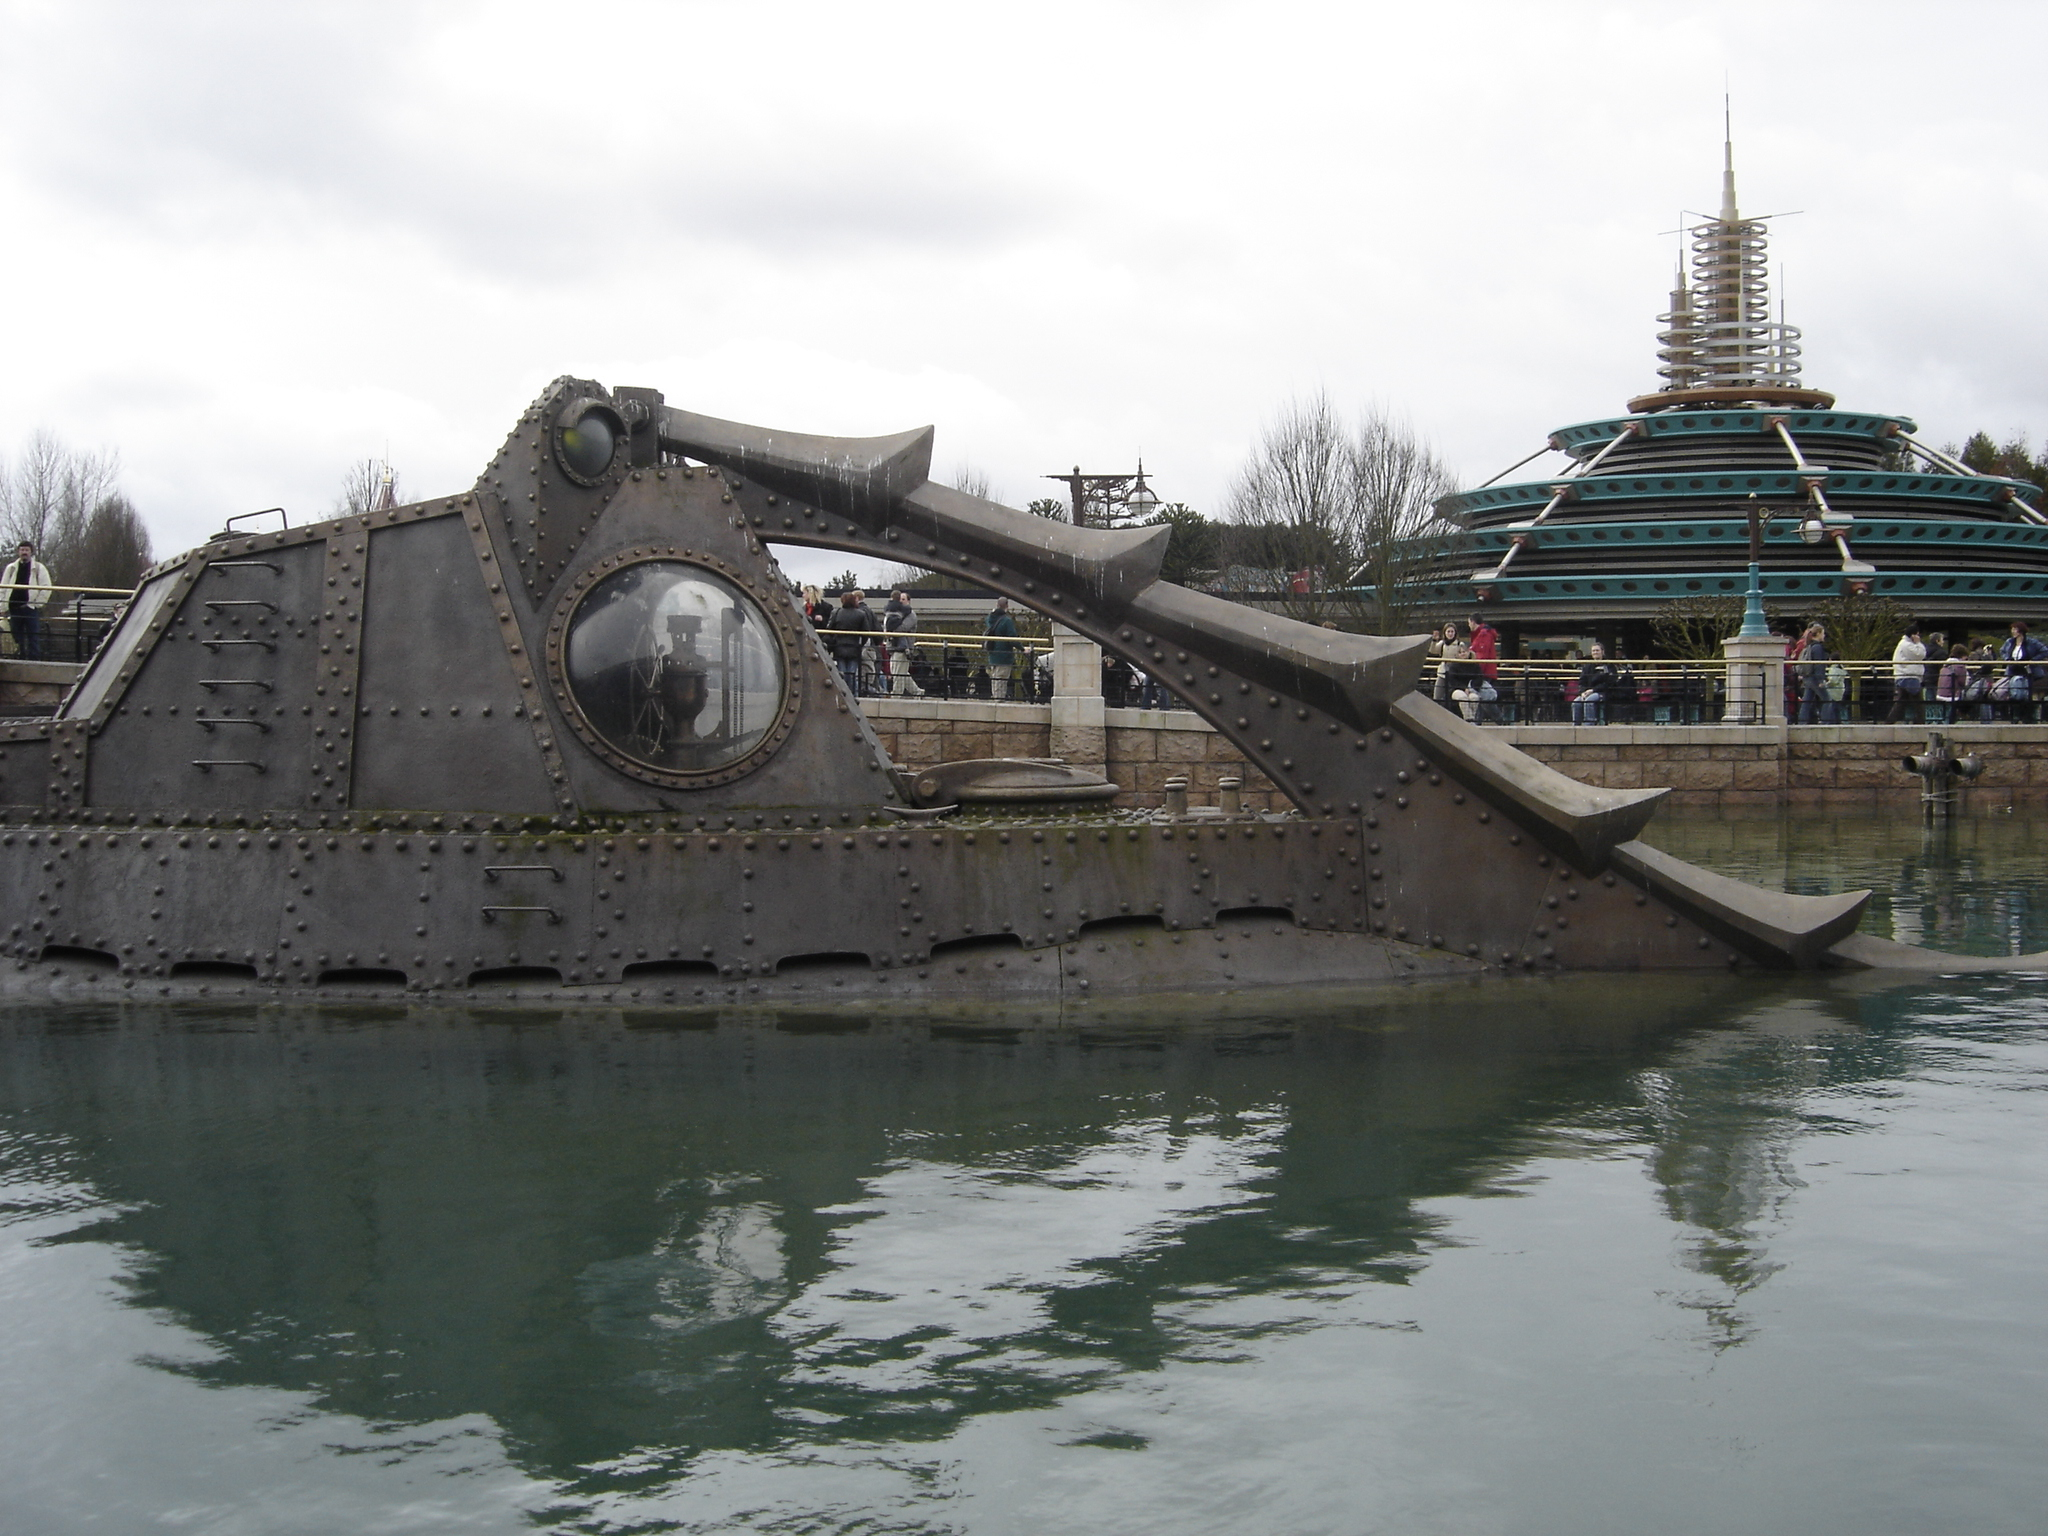 Photo 64 - Le Nautilus